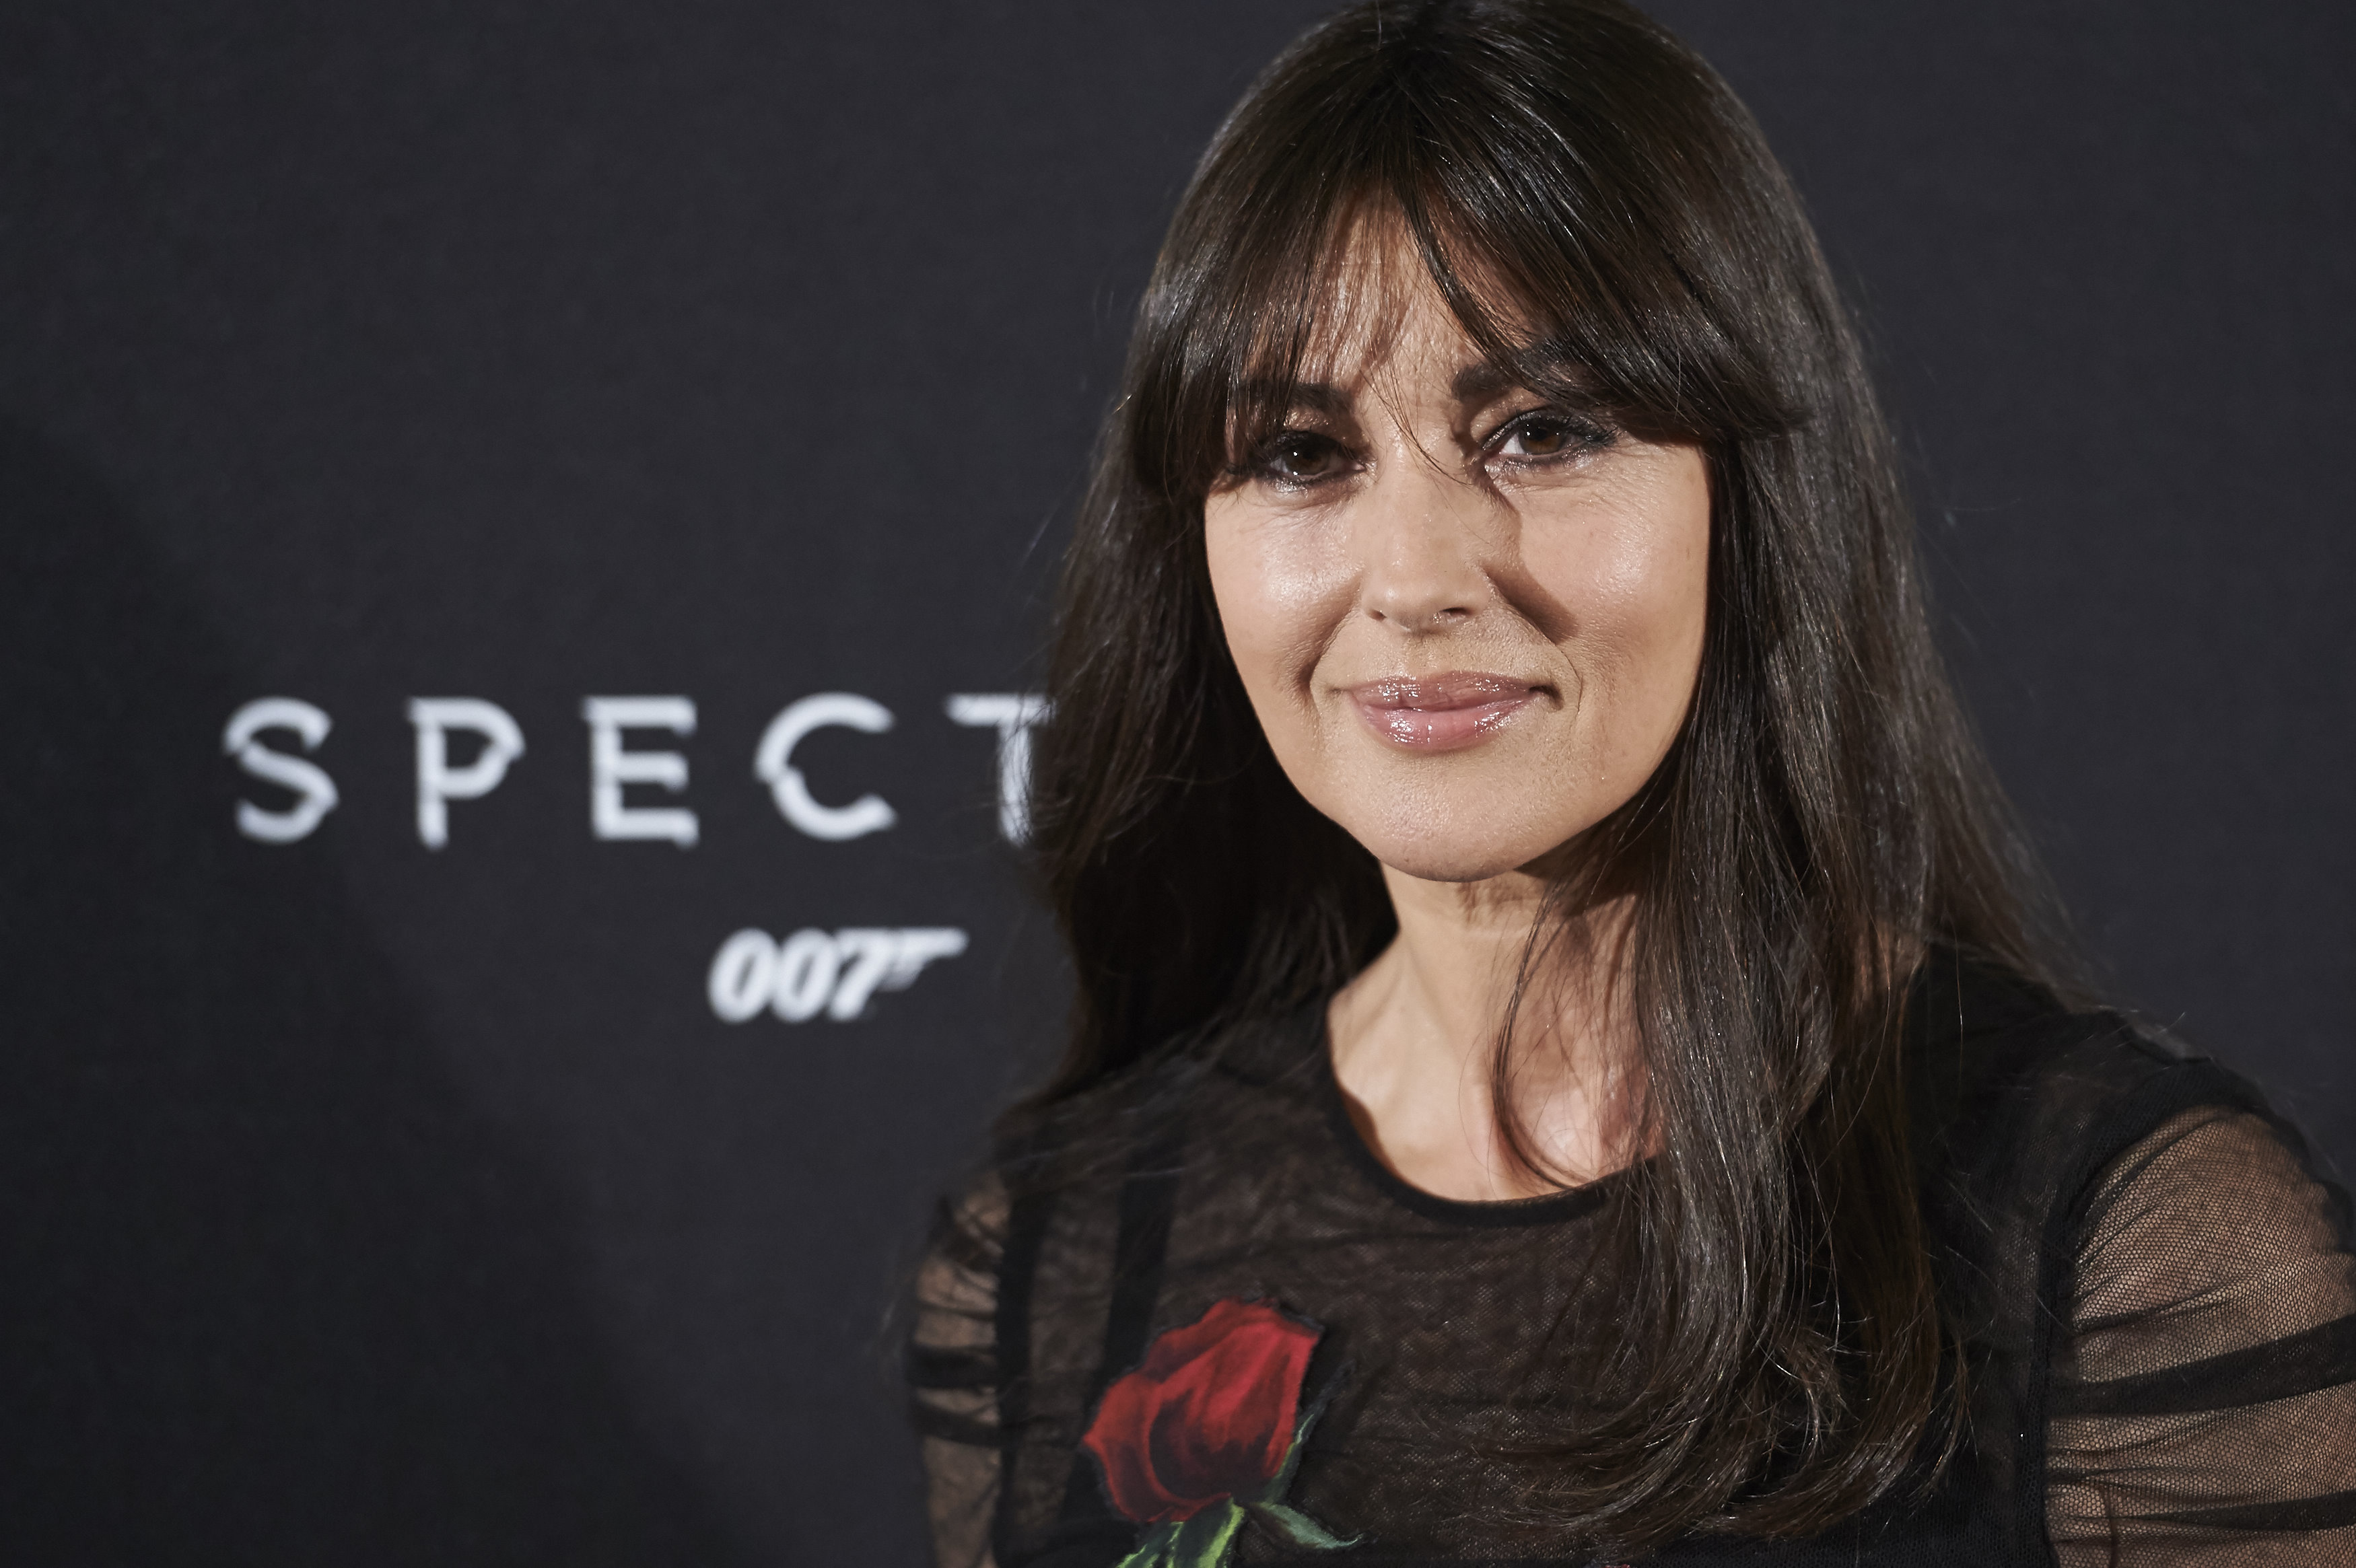 'Spectre' Madrid Photocall